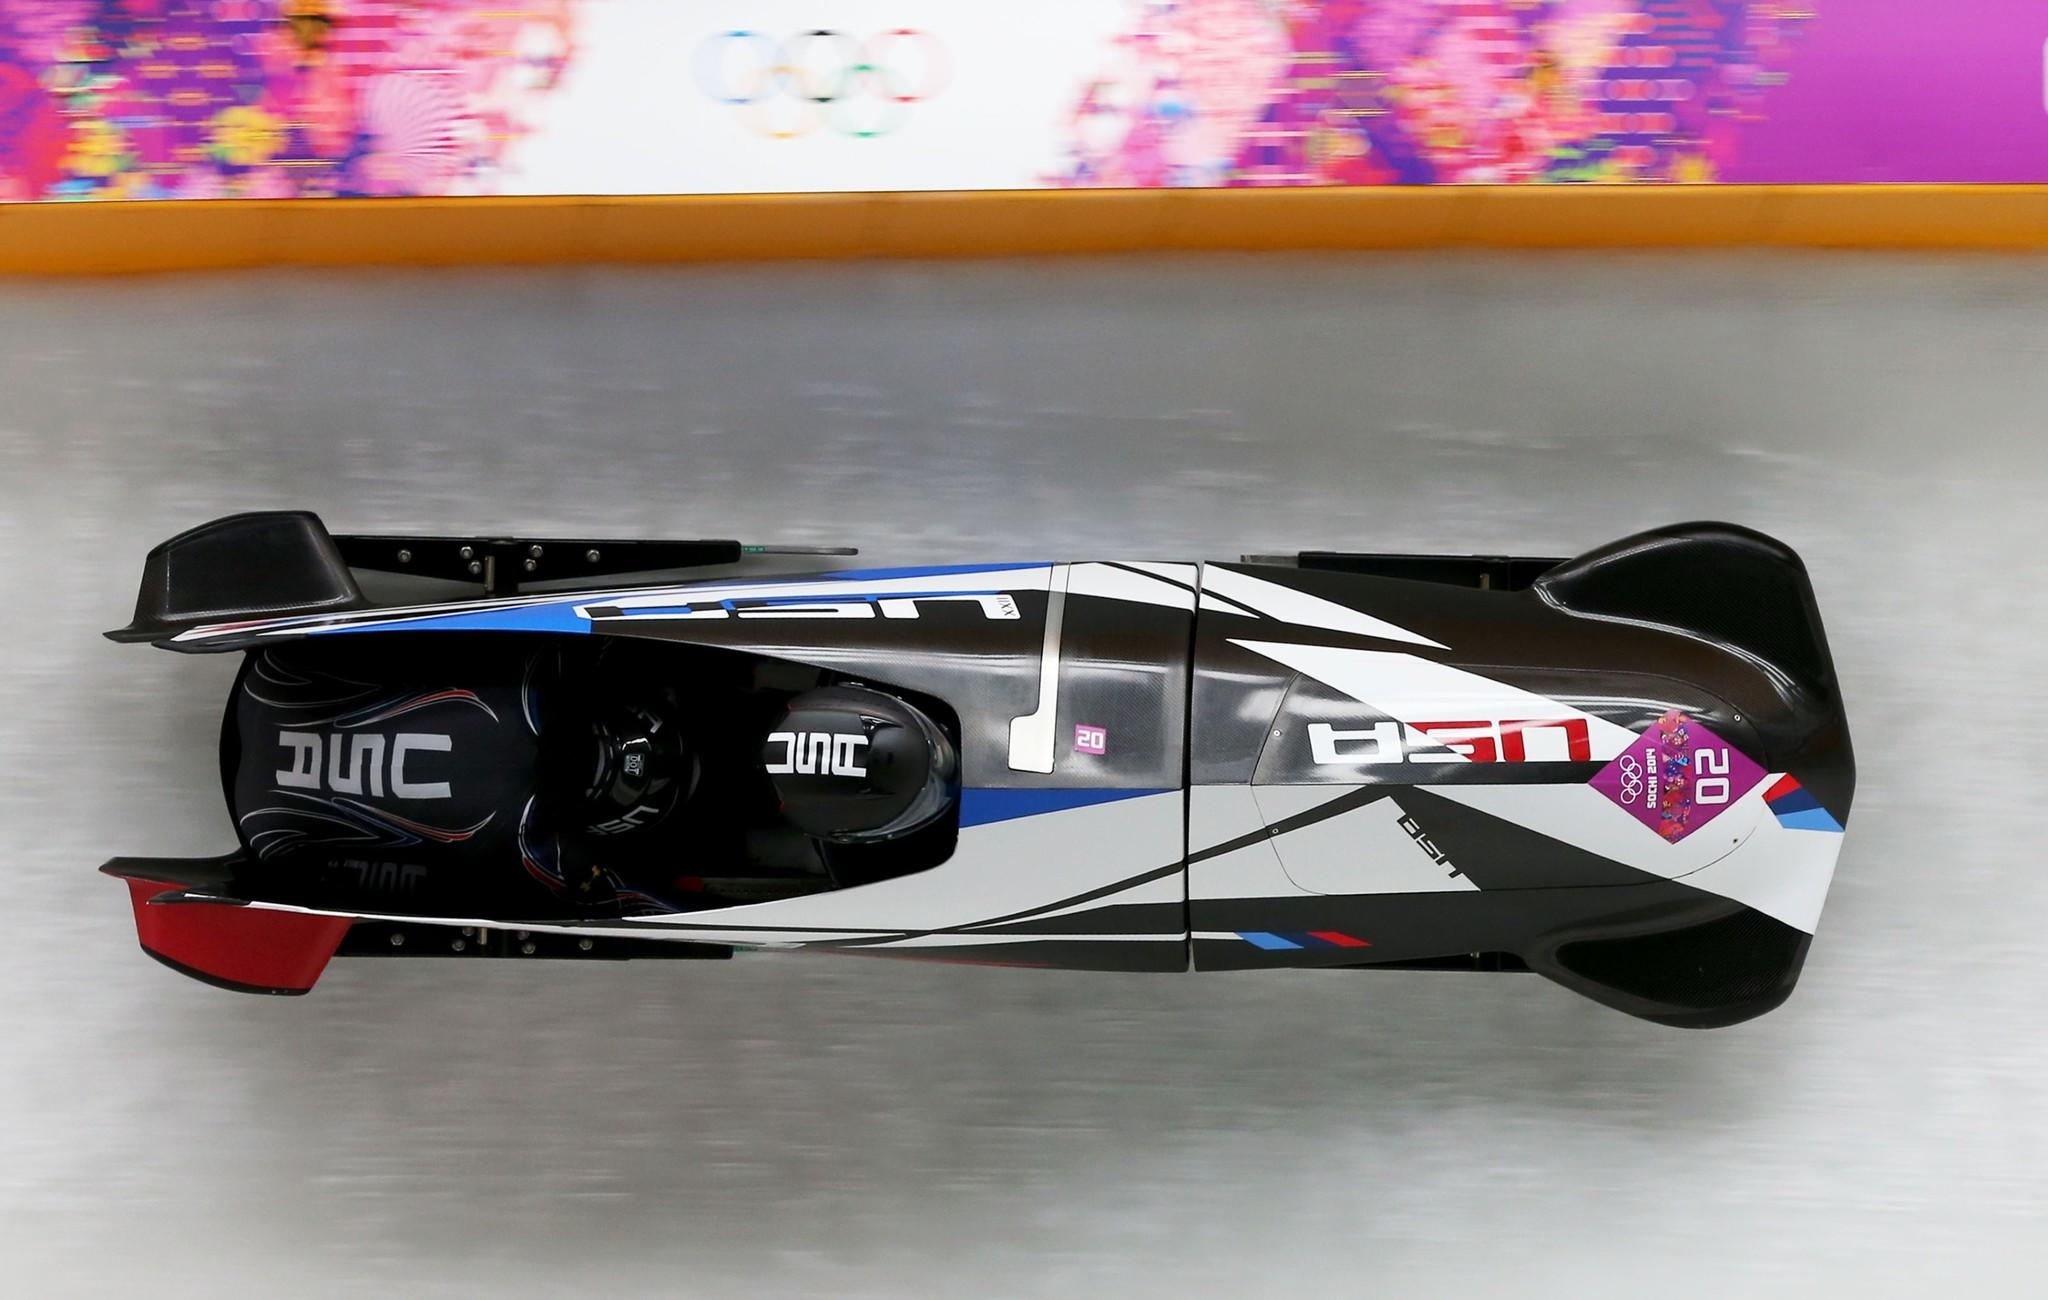 Pilot Elana Meyers and brakeman Lauryn Williams fly down the bobsled course at the Sanki Sliding Center en route to a silver medal finish Wednesday.